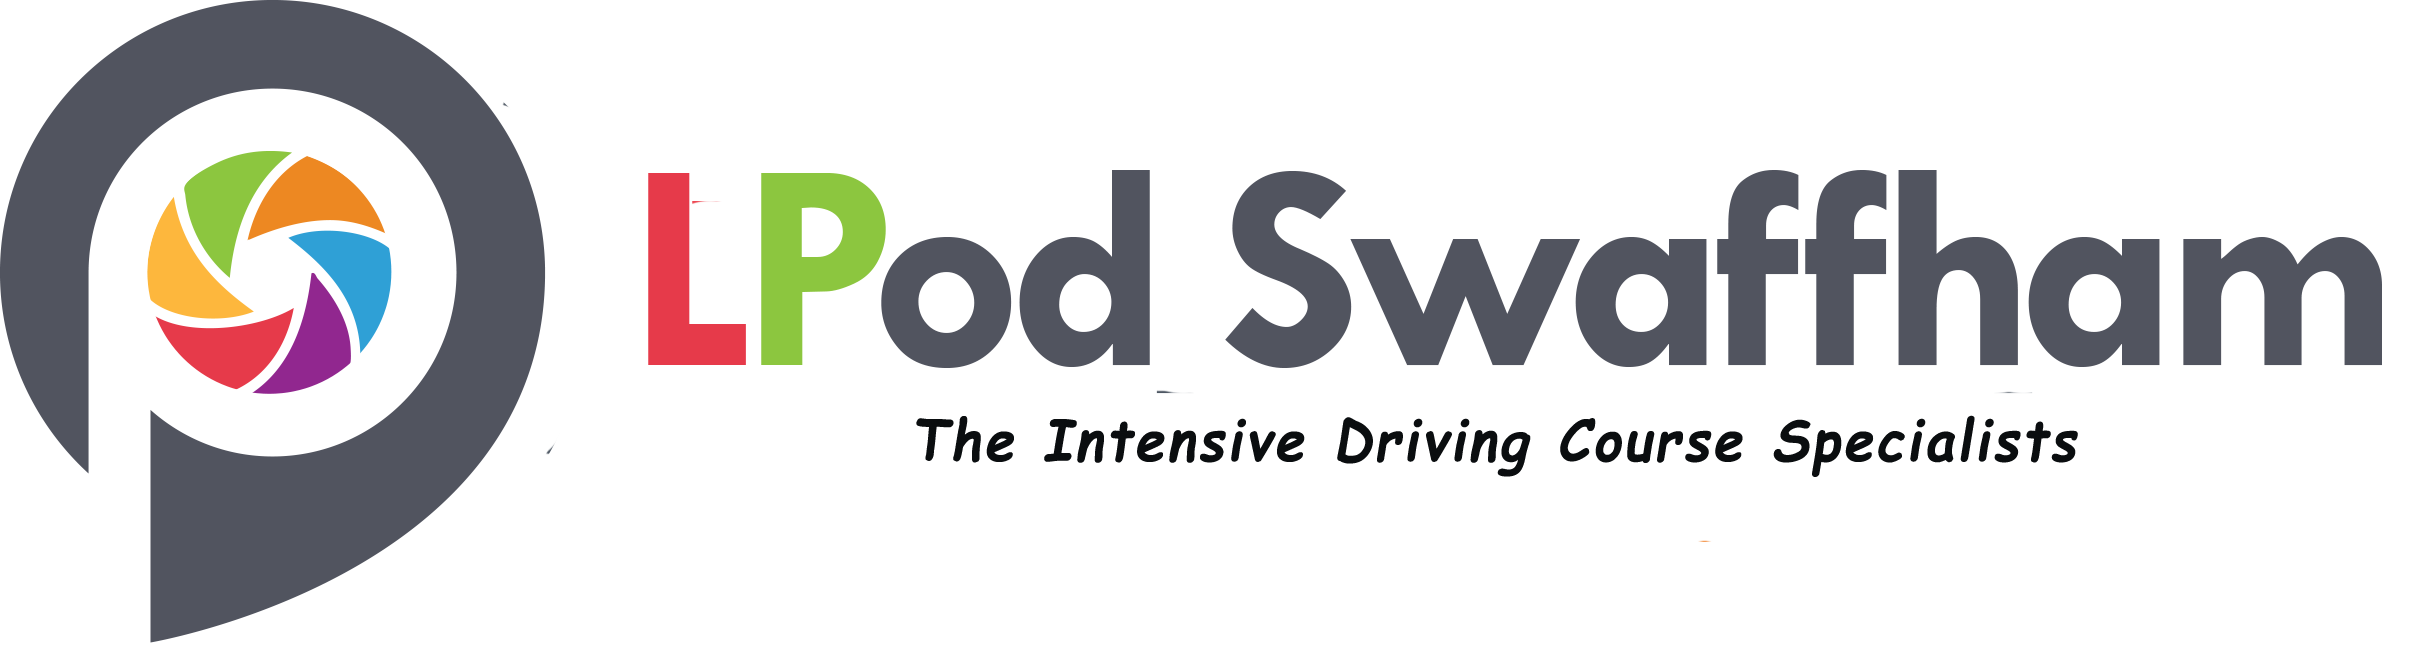 intensive driving courses swaffham, one week driving courses swaffham, fast pass driving courses